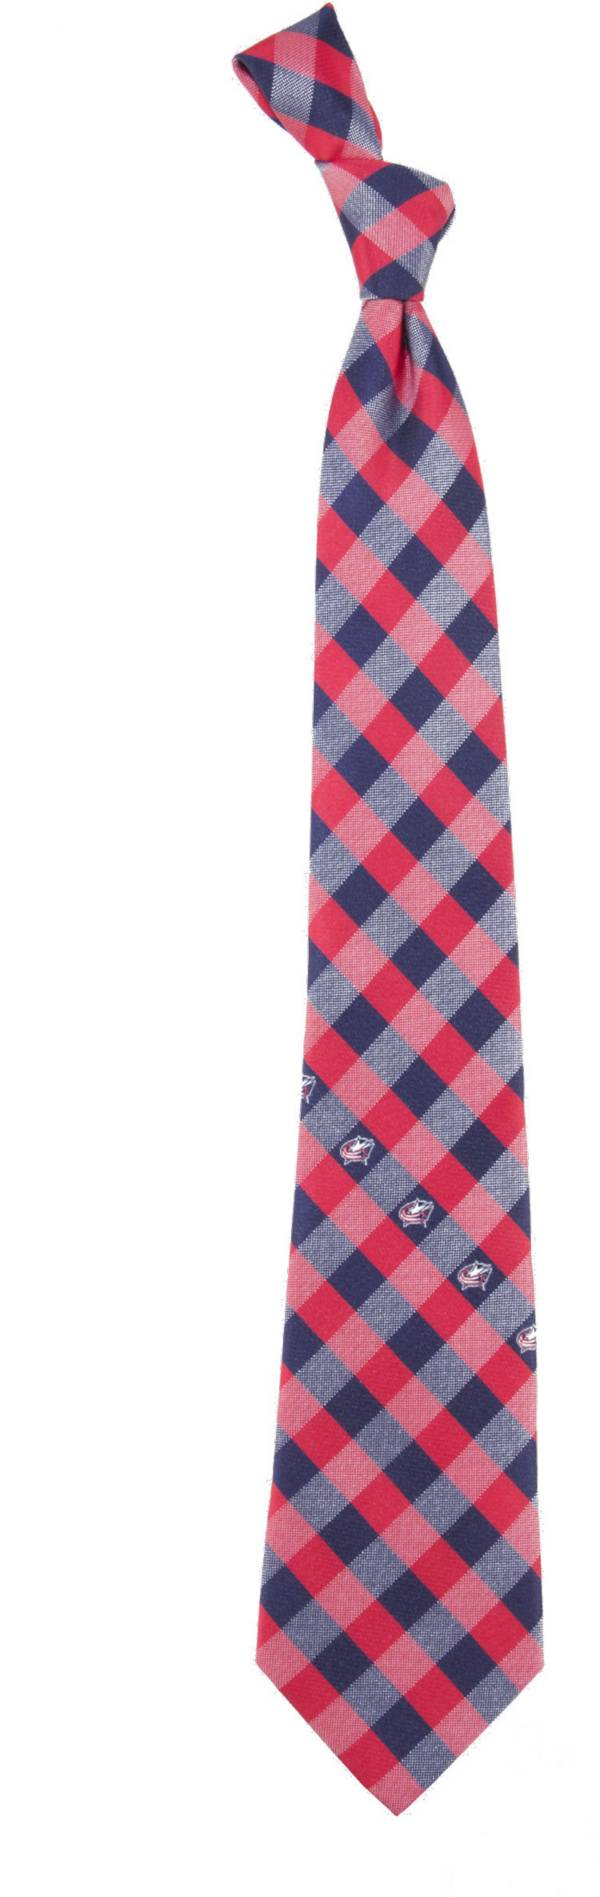 Eagles Wings Columbus Blue Jackets Check Necktie product image